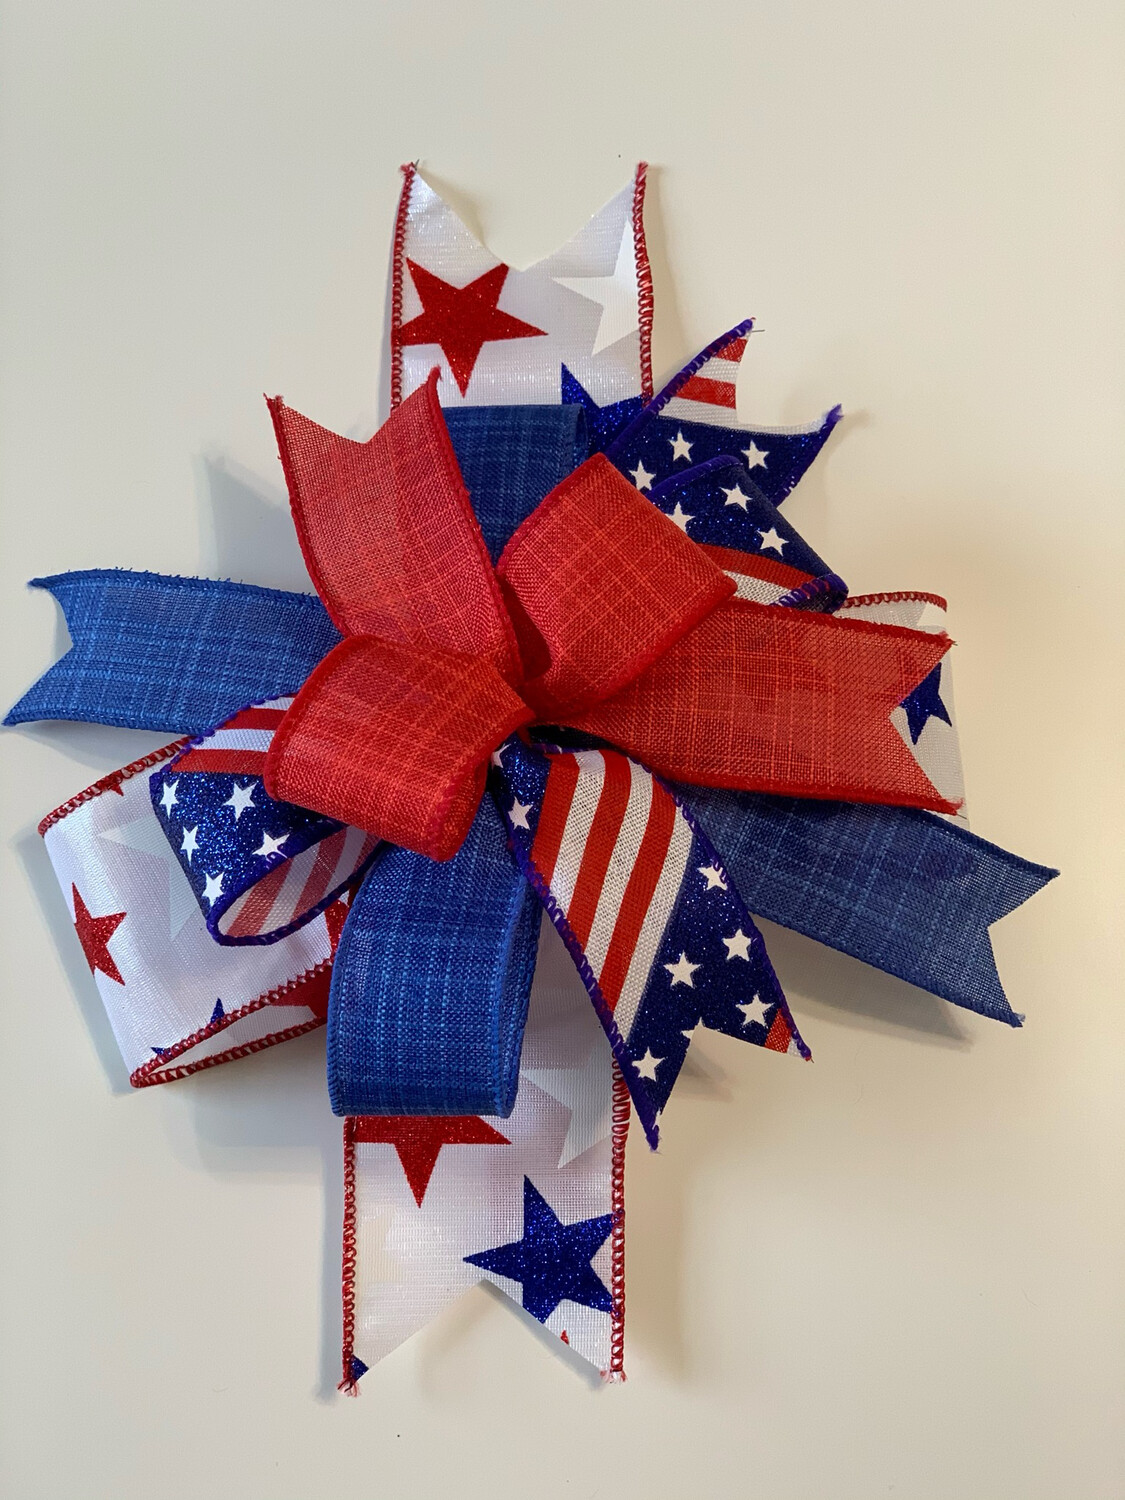 Patriotic Bow for Wreath, Red White Blue Décor, A Touch of Faith